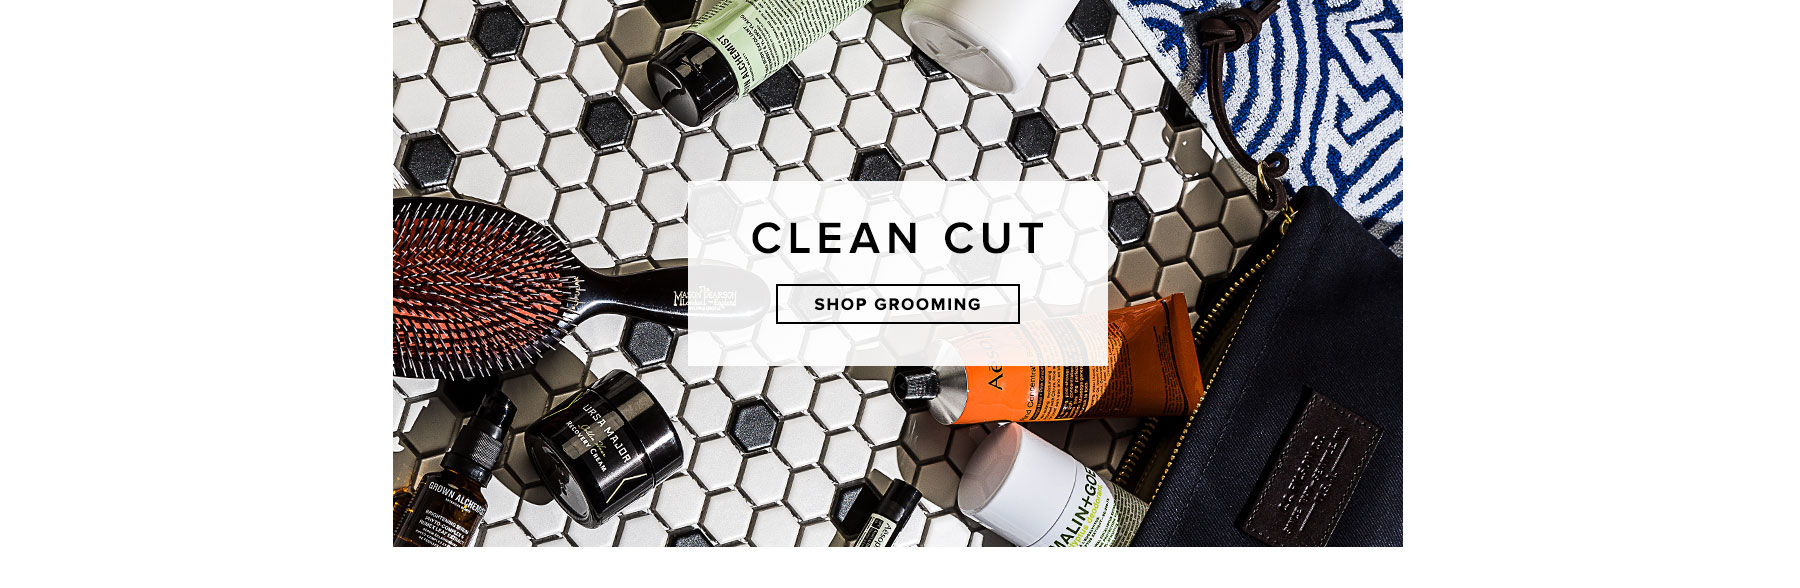 Clean Cut - Shop Grooming